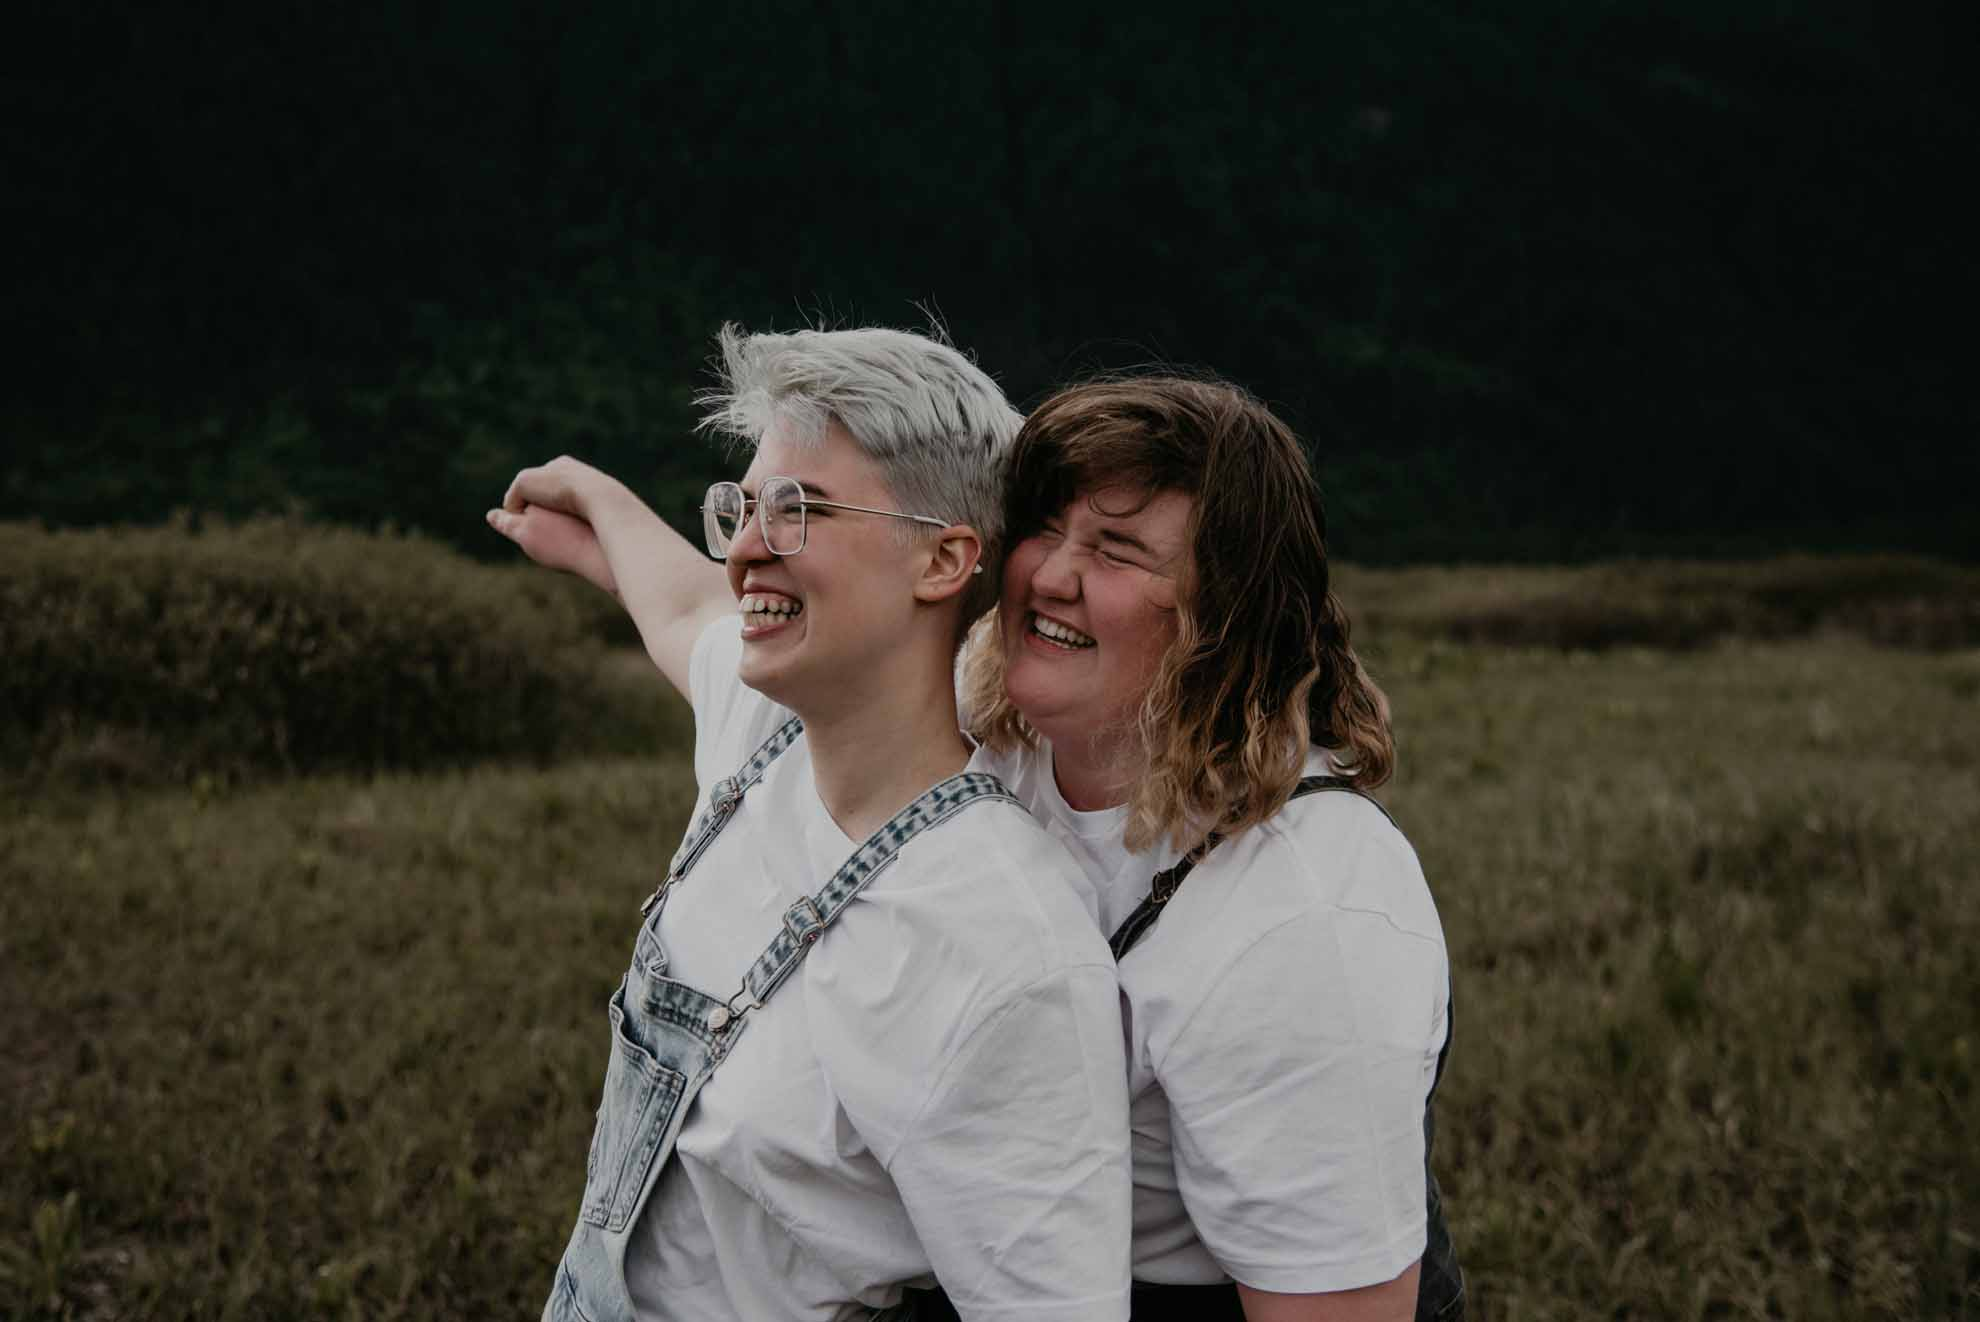 Photography by Taeya Fierro lesbian gay queer non-binary love Toronto Canada Dancing With Her magazine